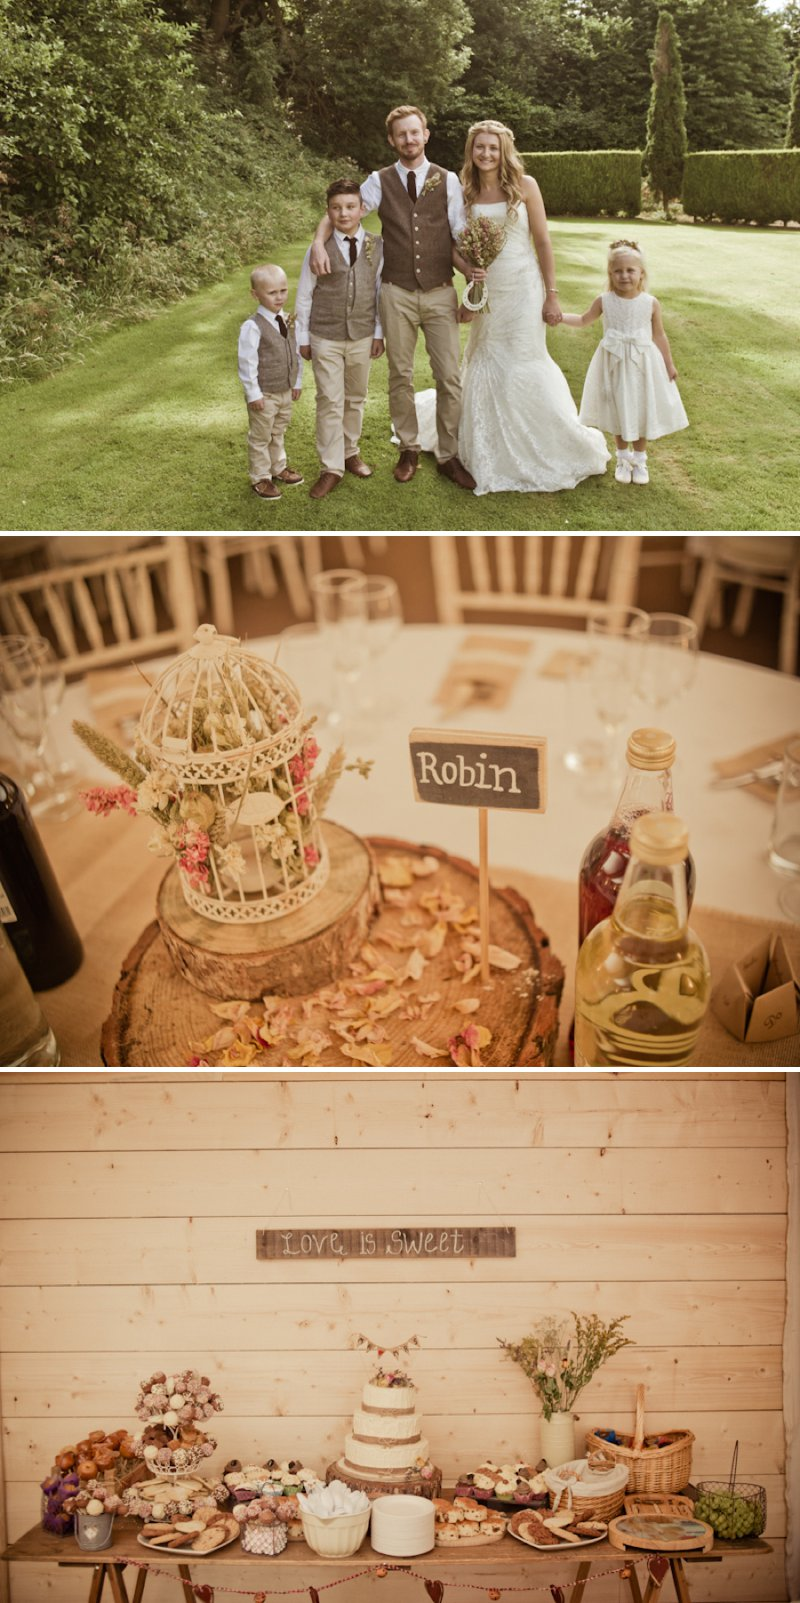 Rustic Wedding At Newton House In Derbyshire With Bride In Sophia Tolli Gown With A Dried Flower Headpiece From The Artisan Dried Flower Co And Groom In Tweed Waistcoat With Images From Jake Morley 7